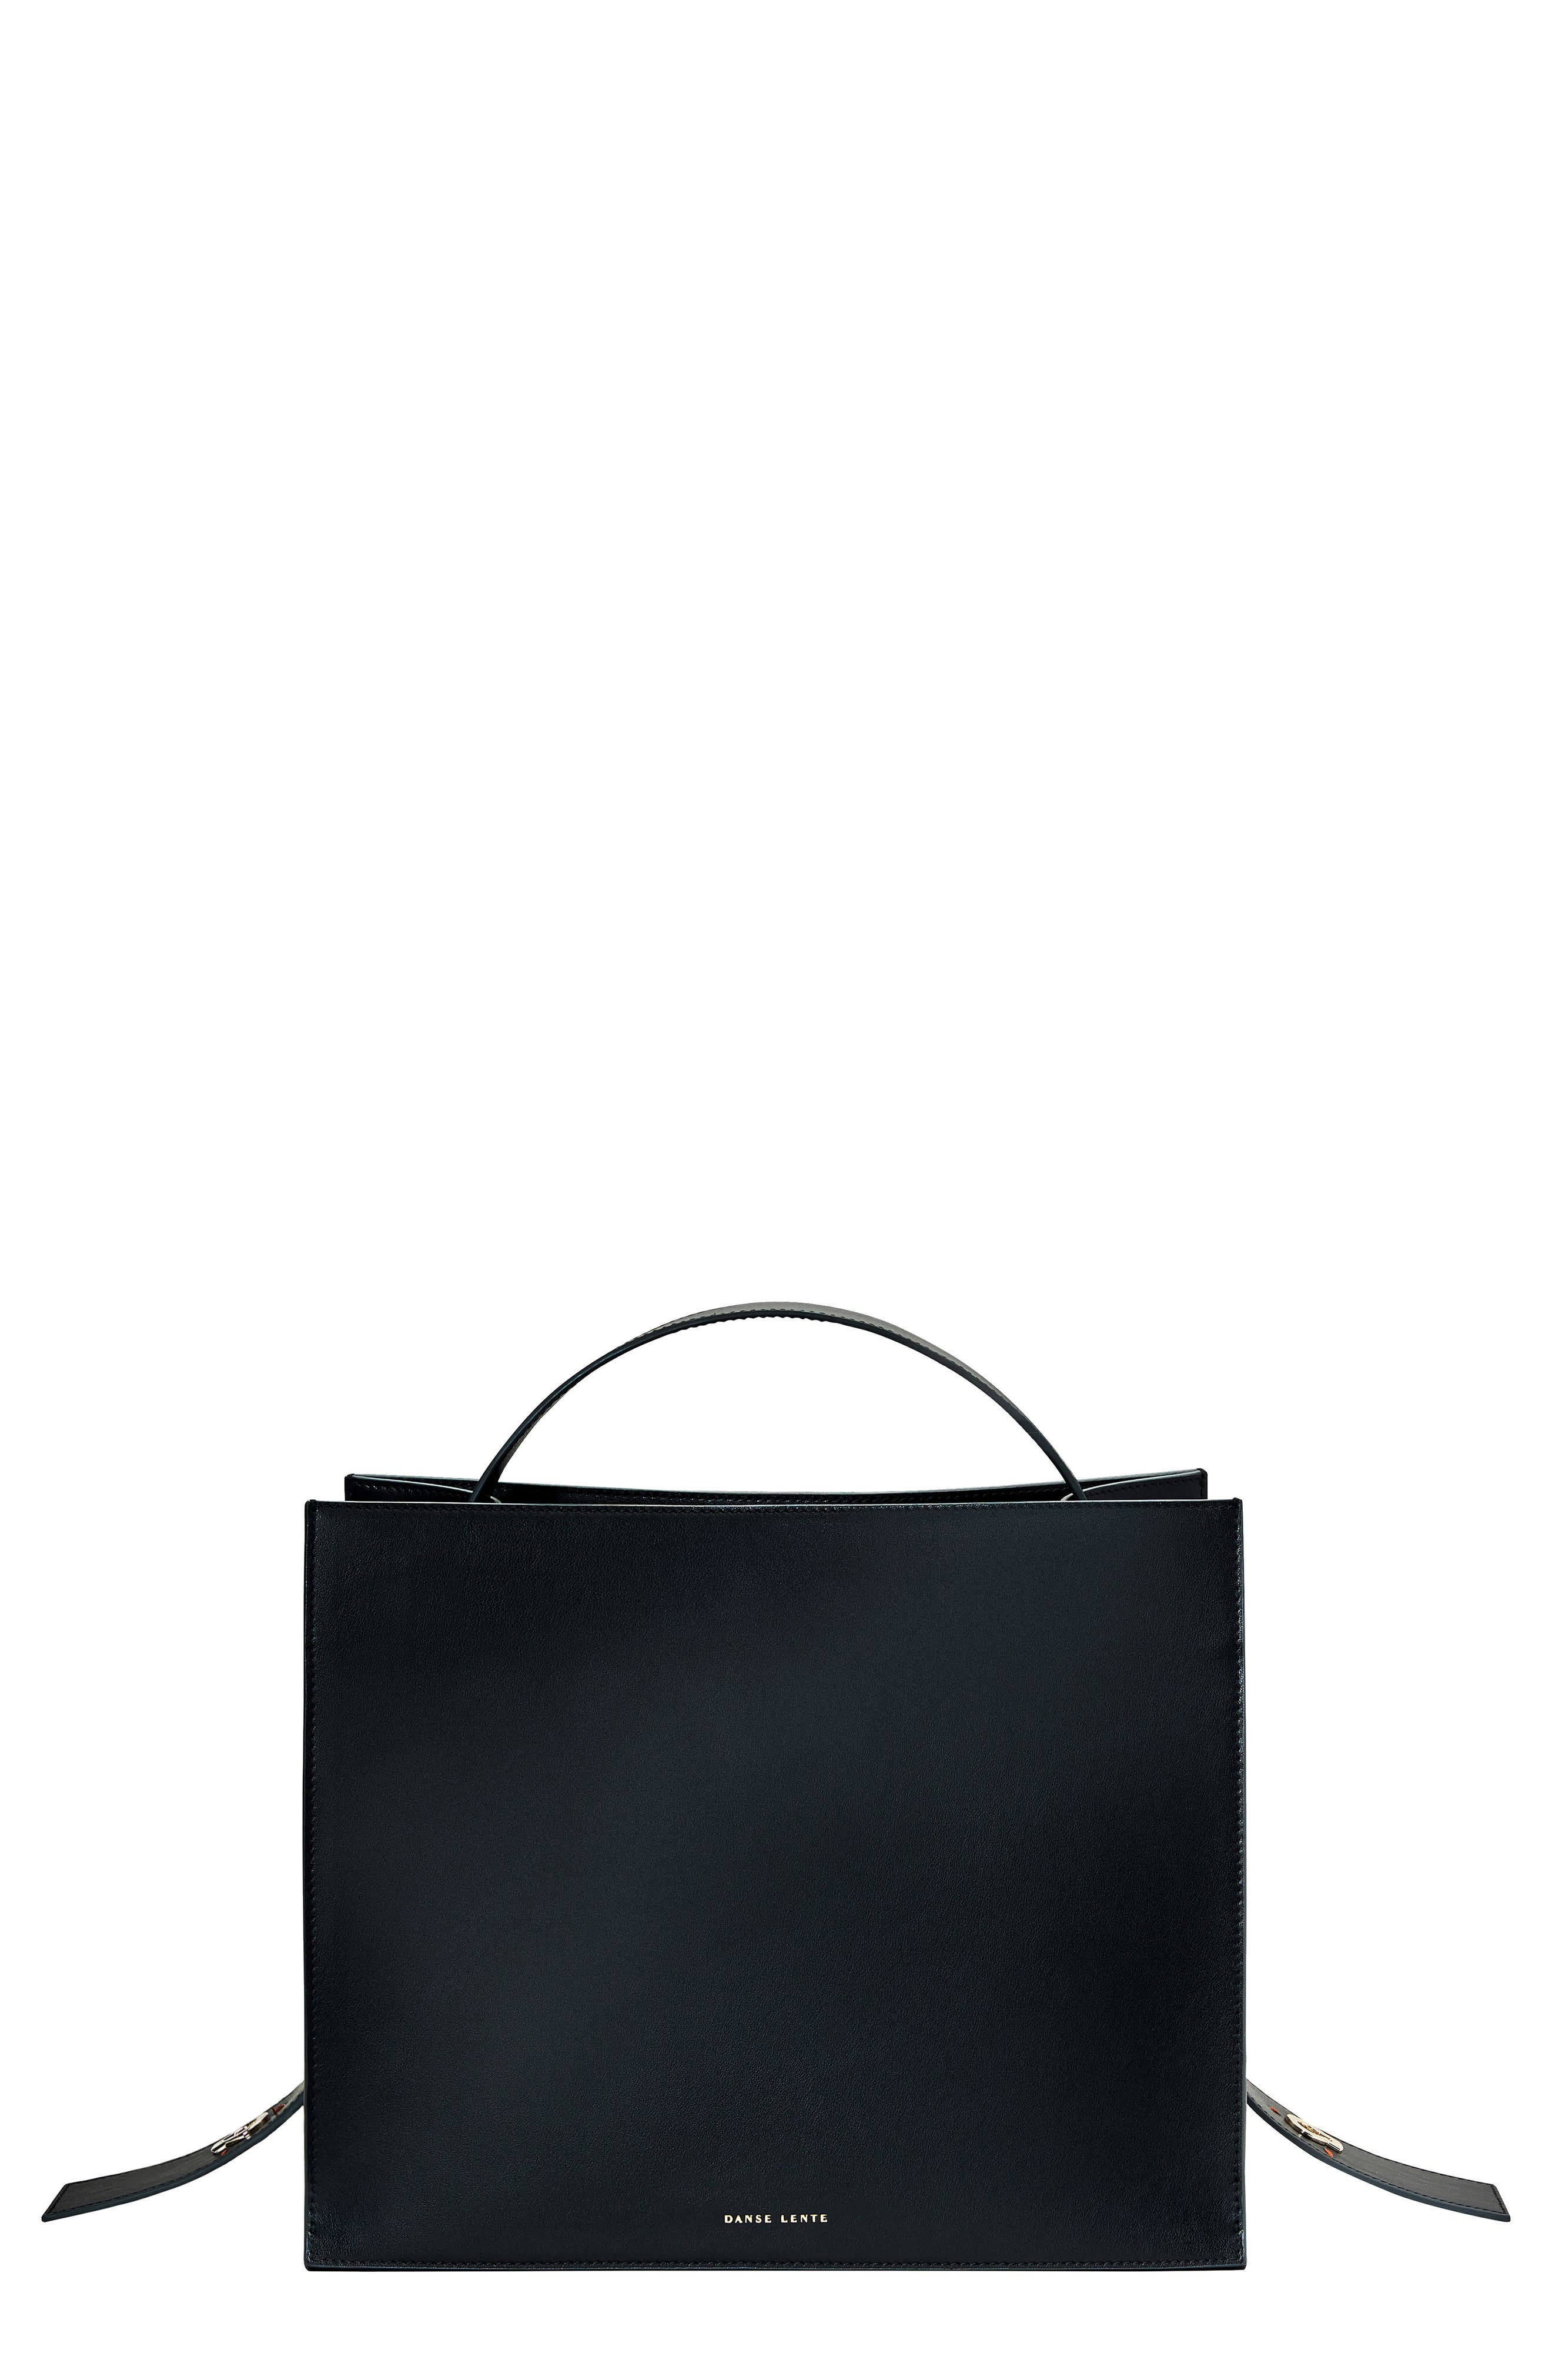 Young Leather Tote Bag,                         Main,                         color, Black